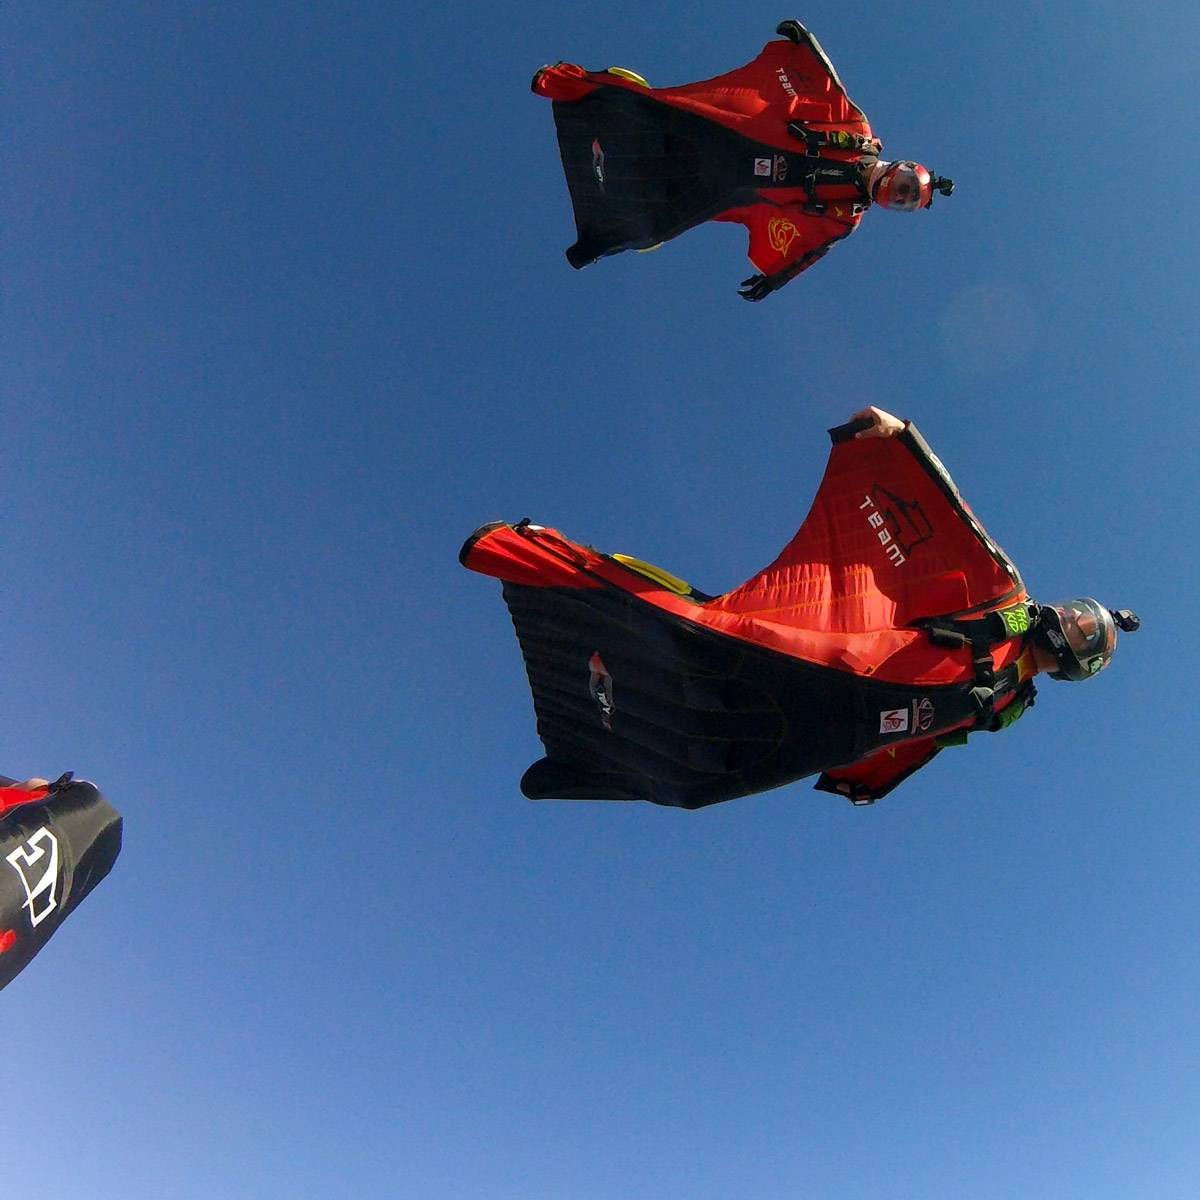 Jumpers enjoying wingsuit flying at Skydive City Z-Hills